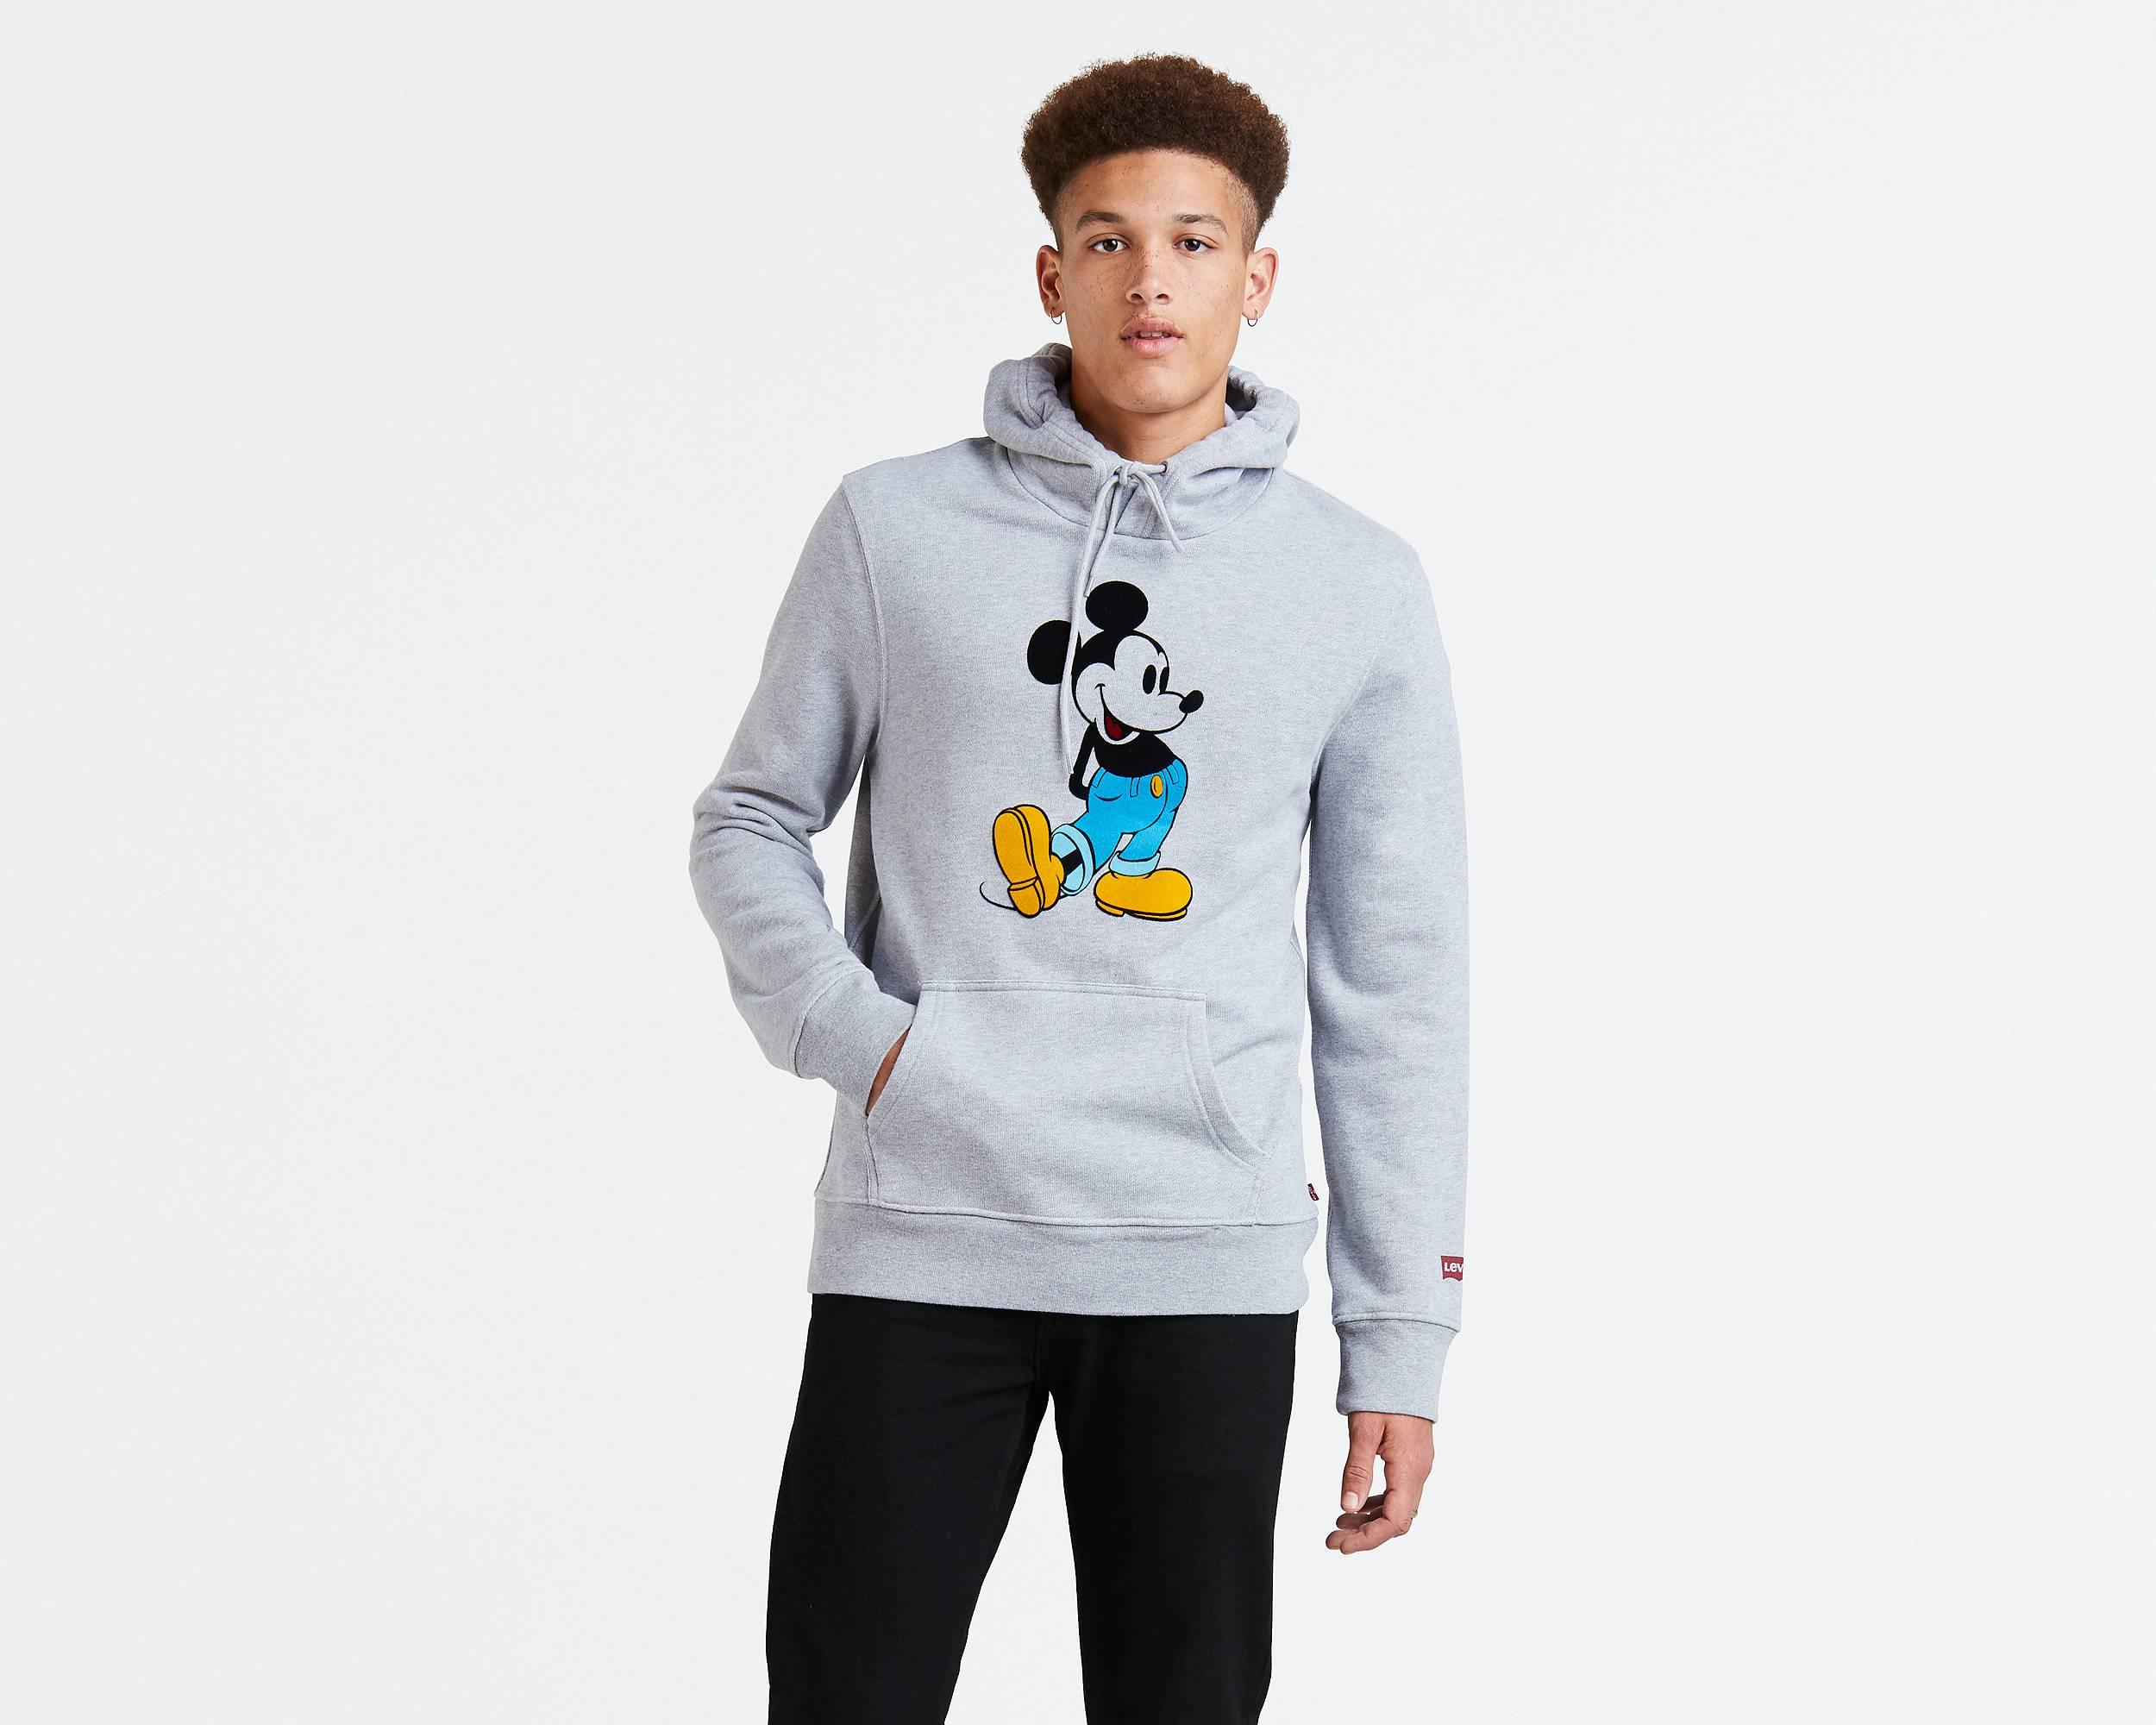 e3bfc744db0b Levi s® X Mickey Mouse Graphic Pullover Hoodie - Levi s Jeans ...